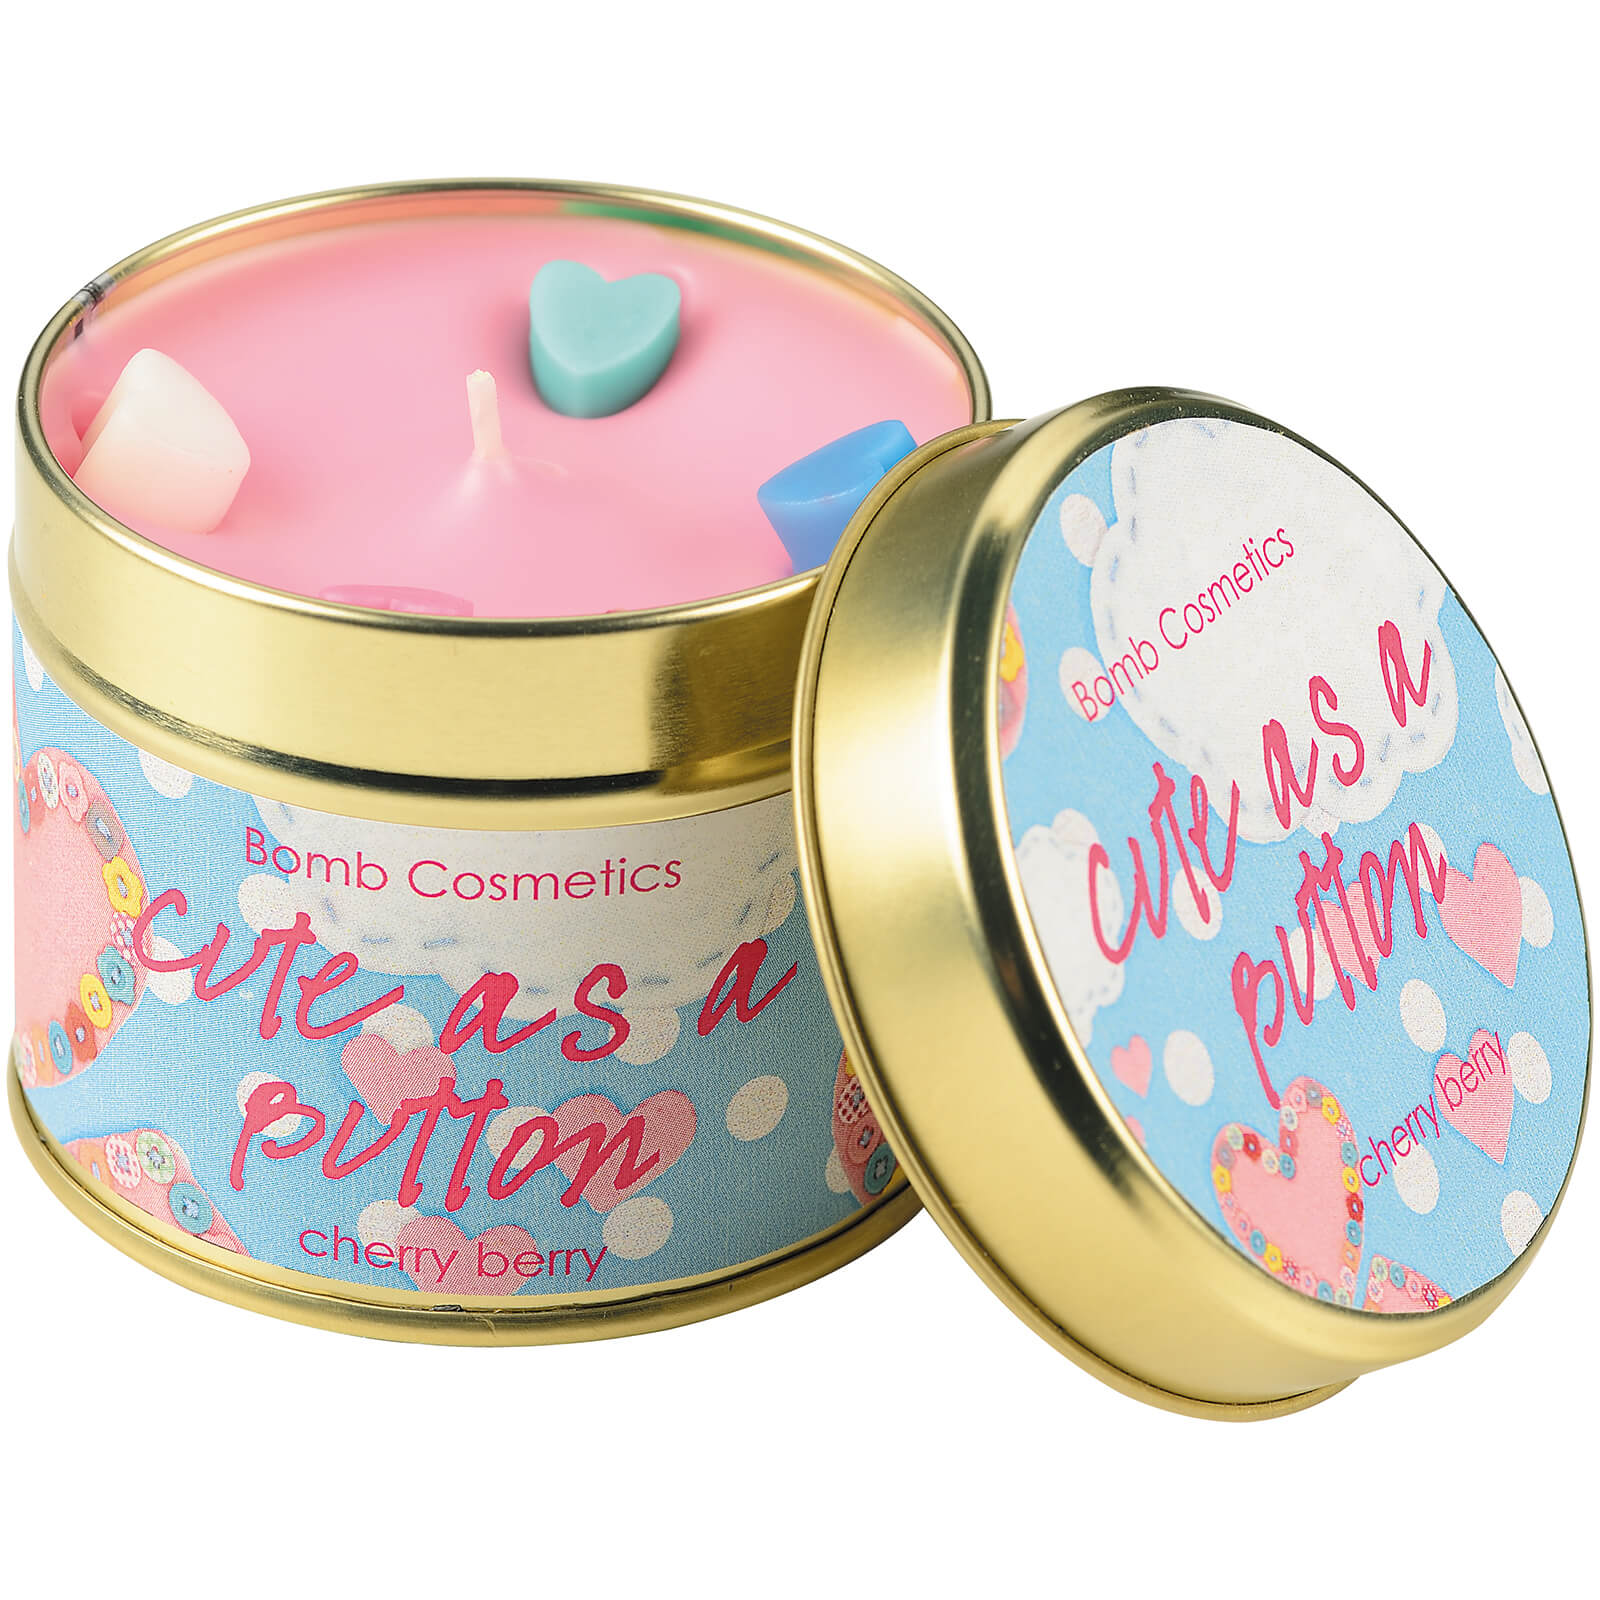 Bomb Cosmetics Cute As A Button Tin Candle